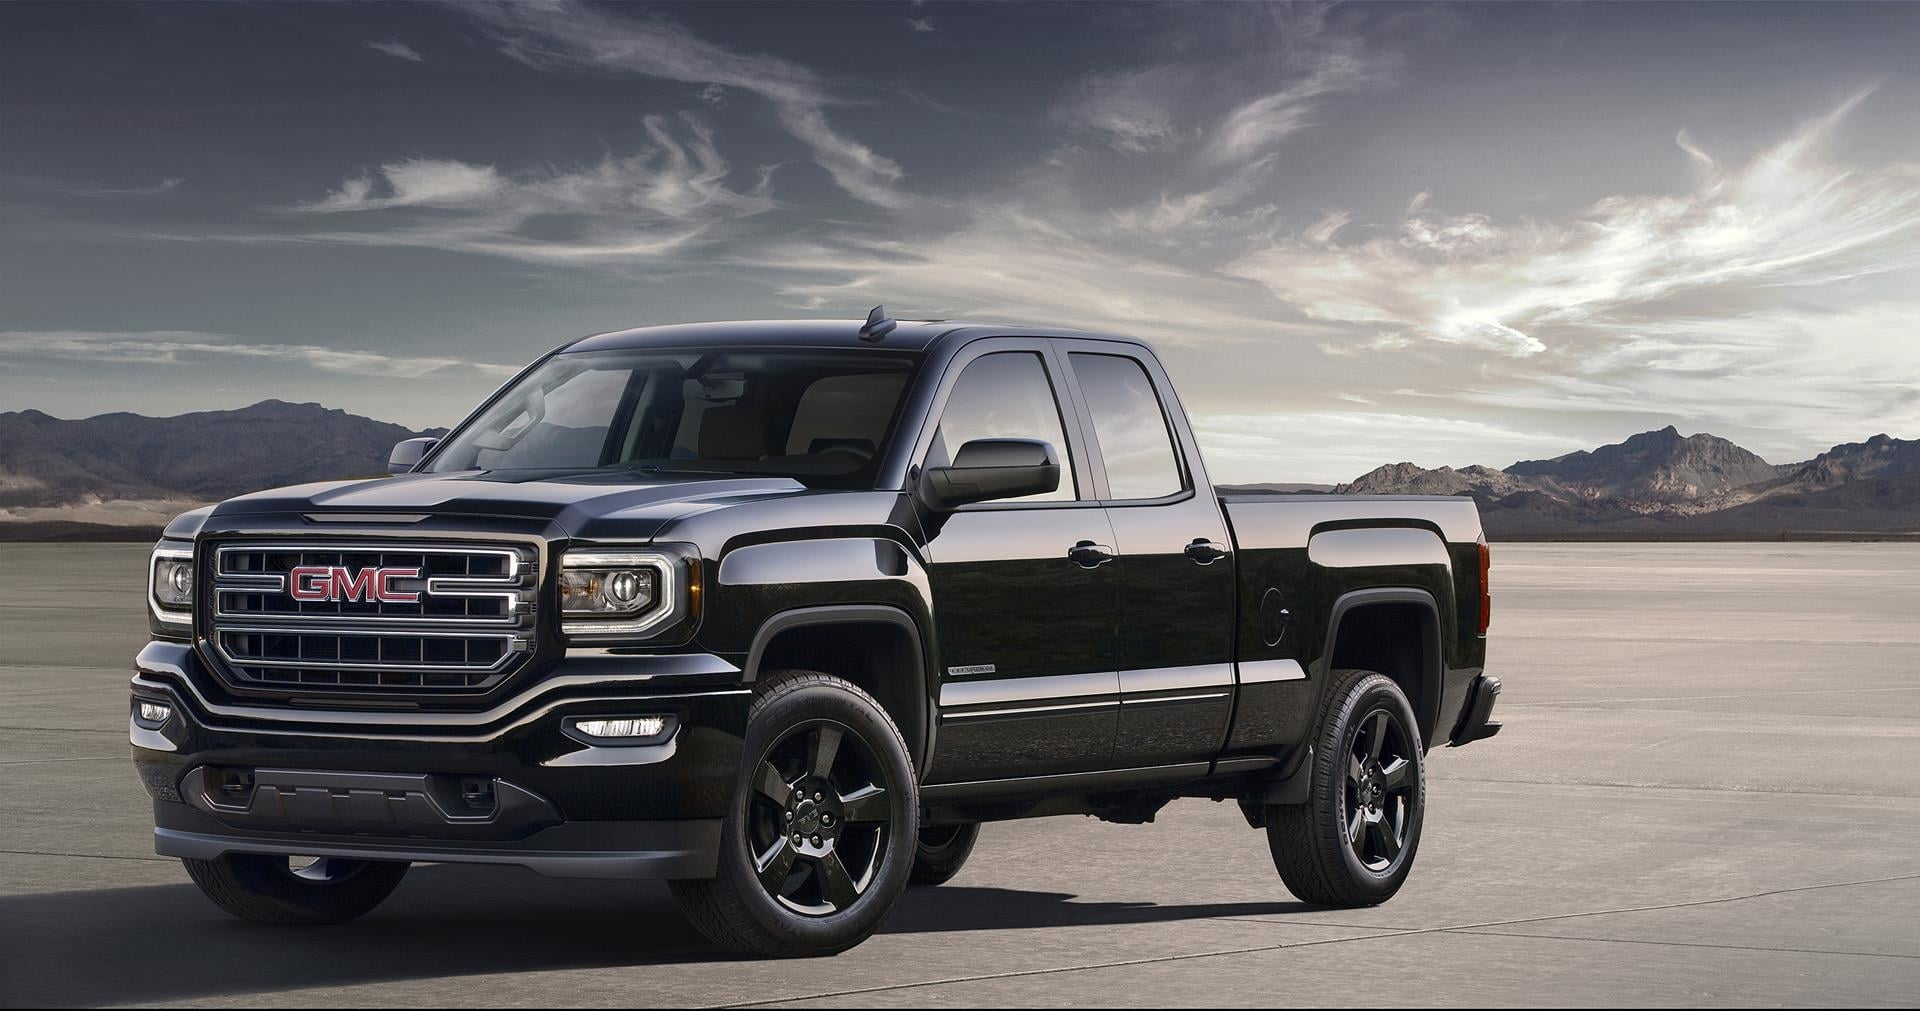 1920x1011 - GMC Wallpapers 25